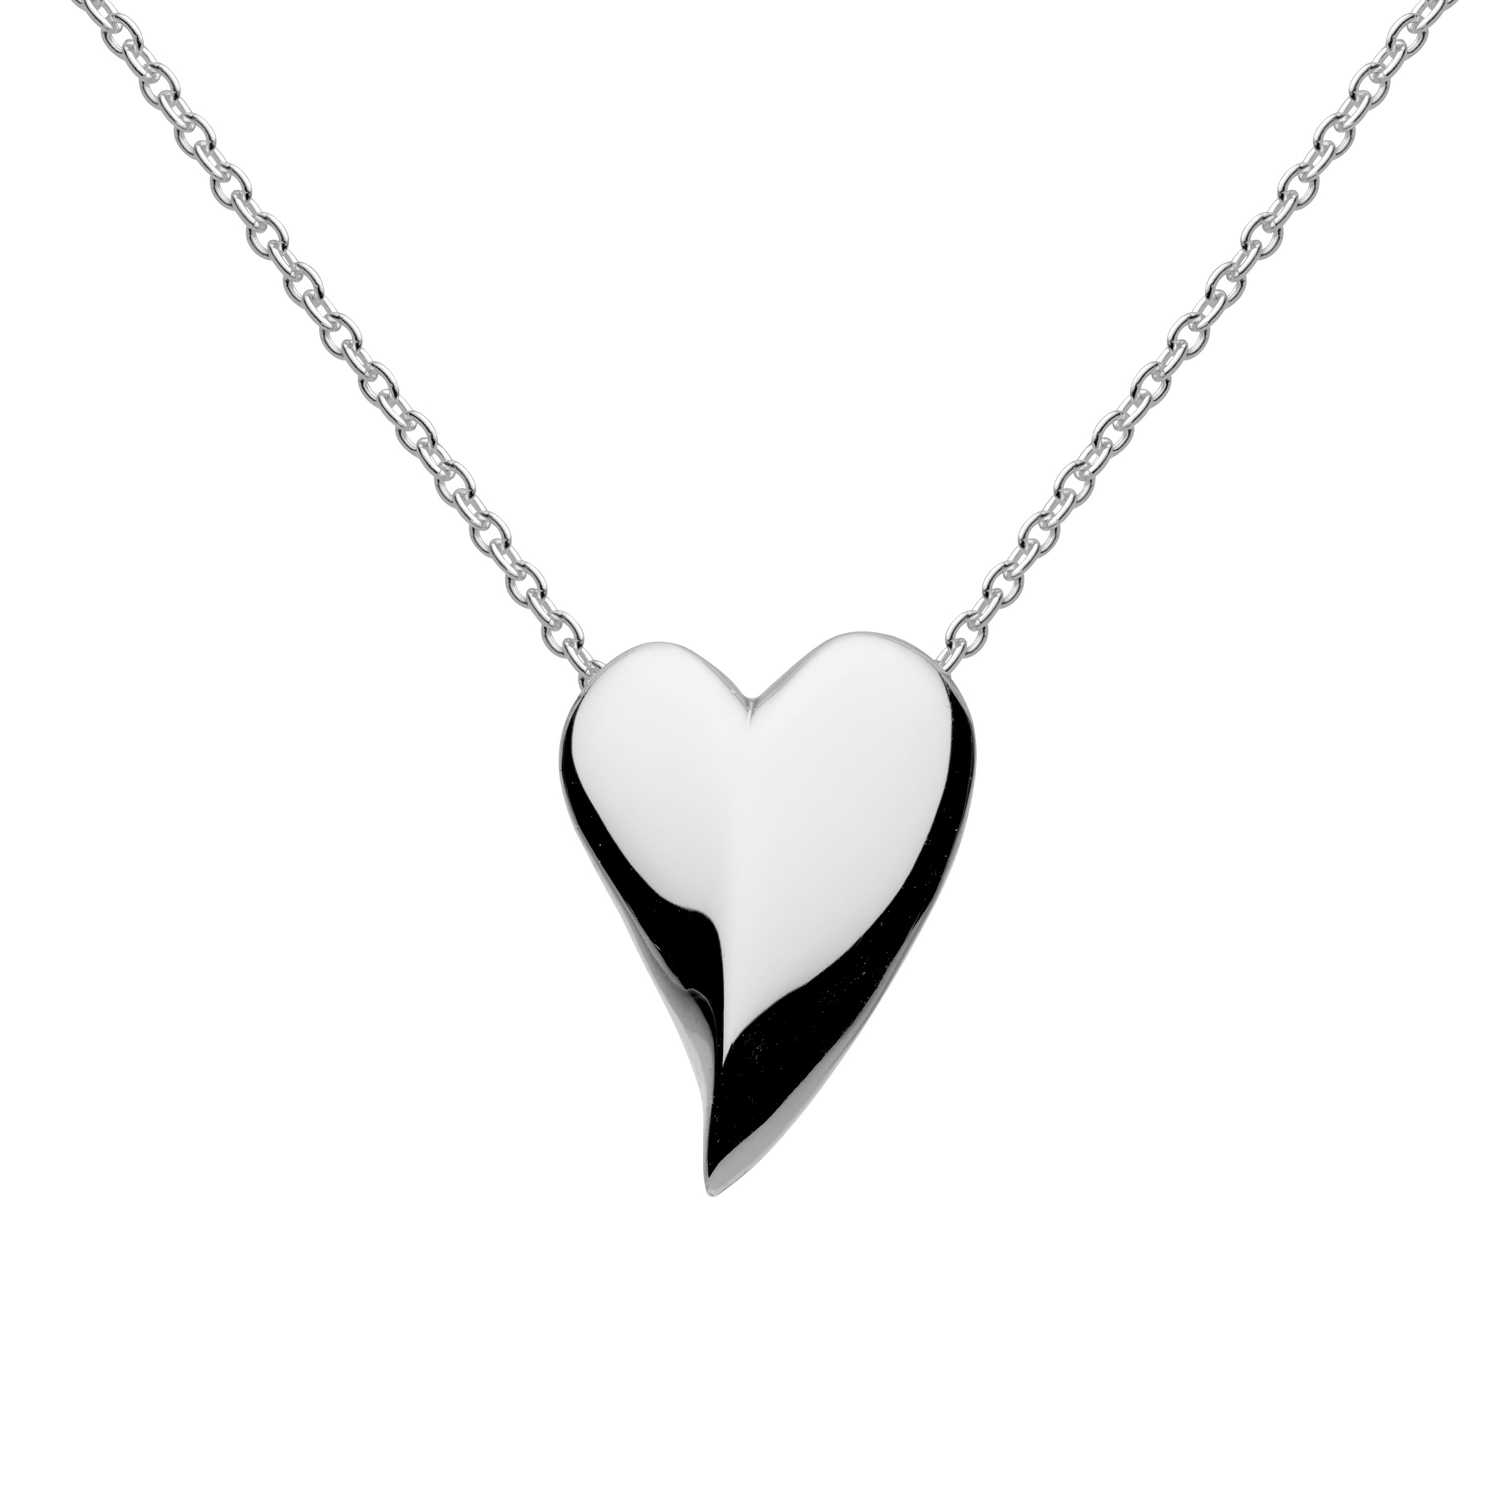 castle-rocks-and-jewelry-lust-heart-necklace-silver-kit-heath